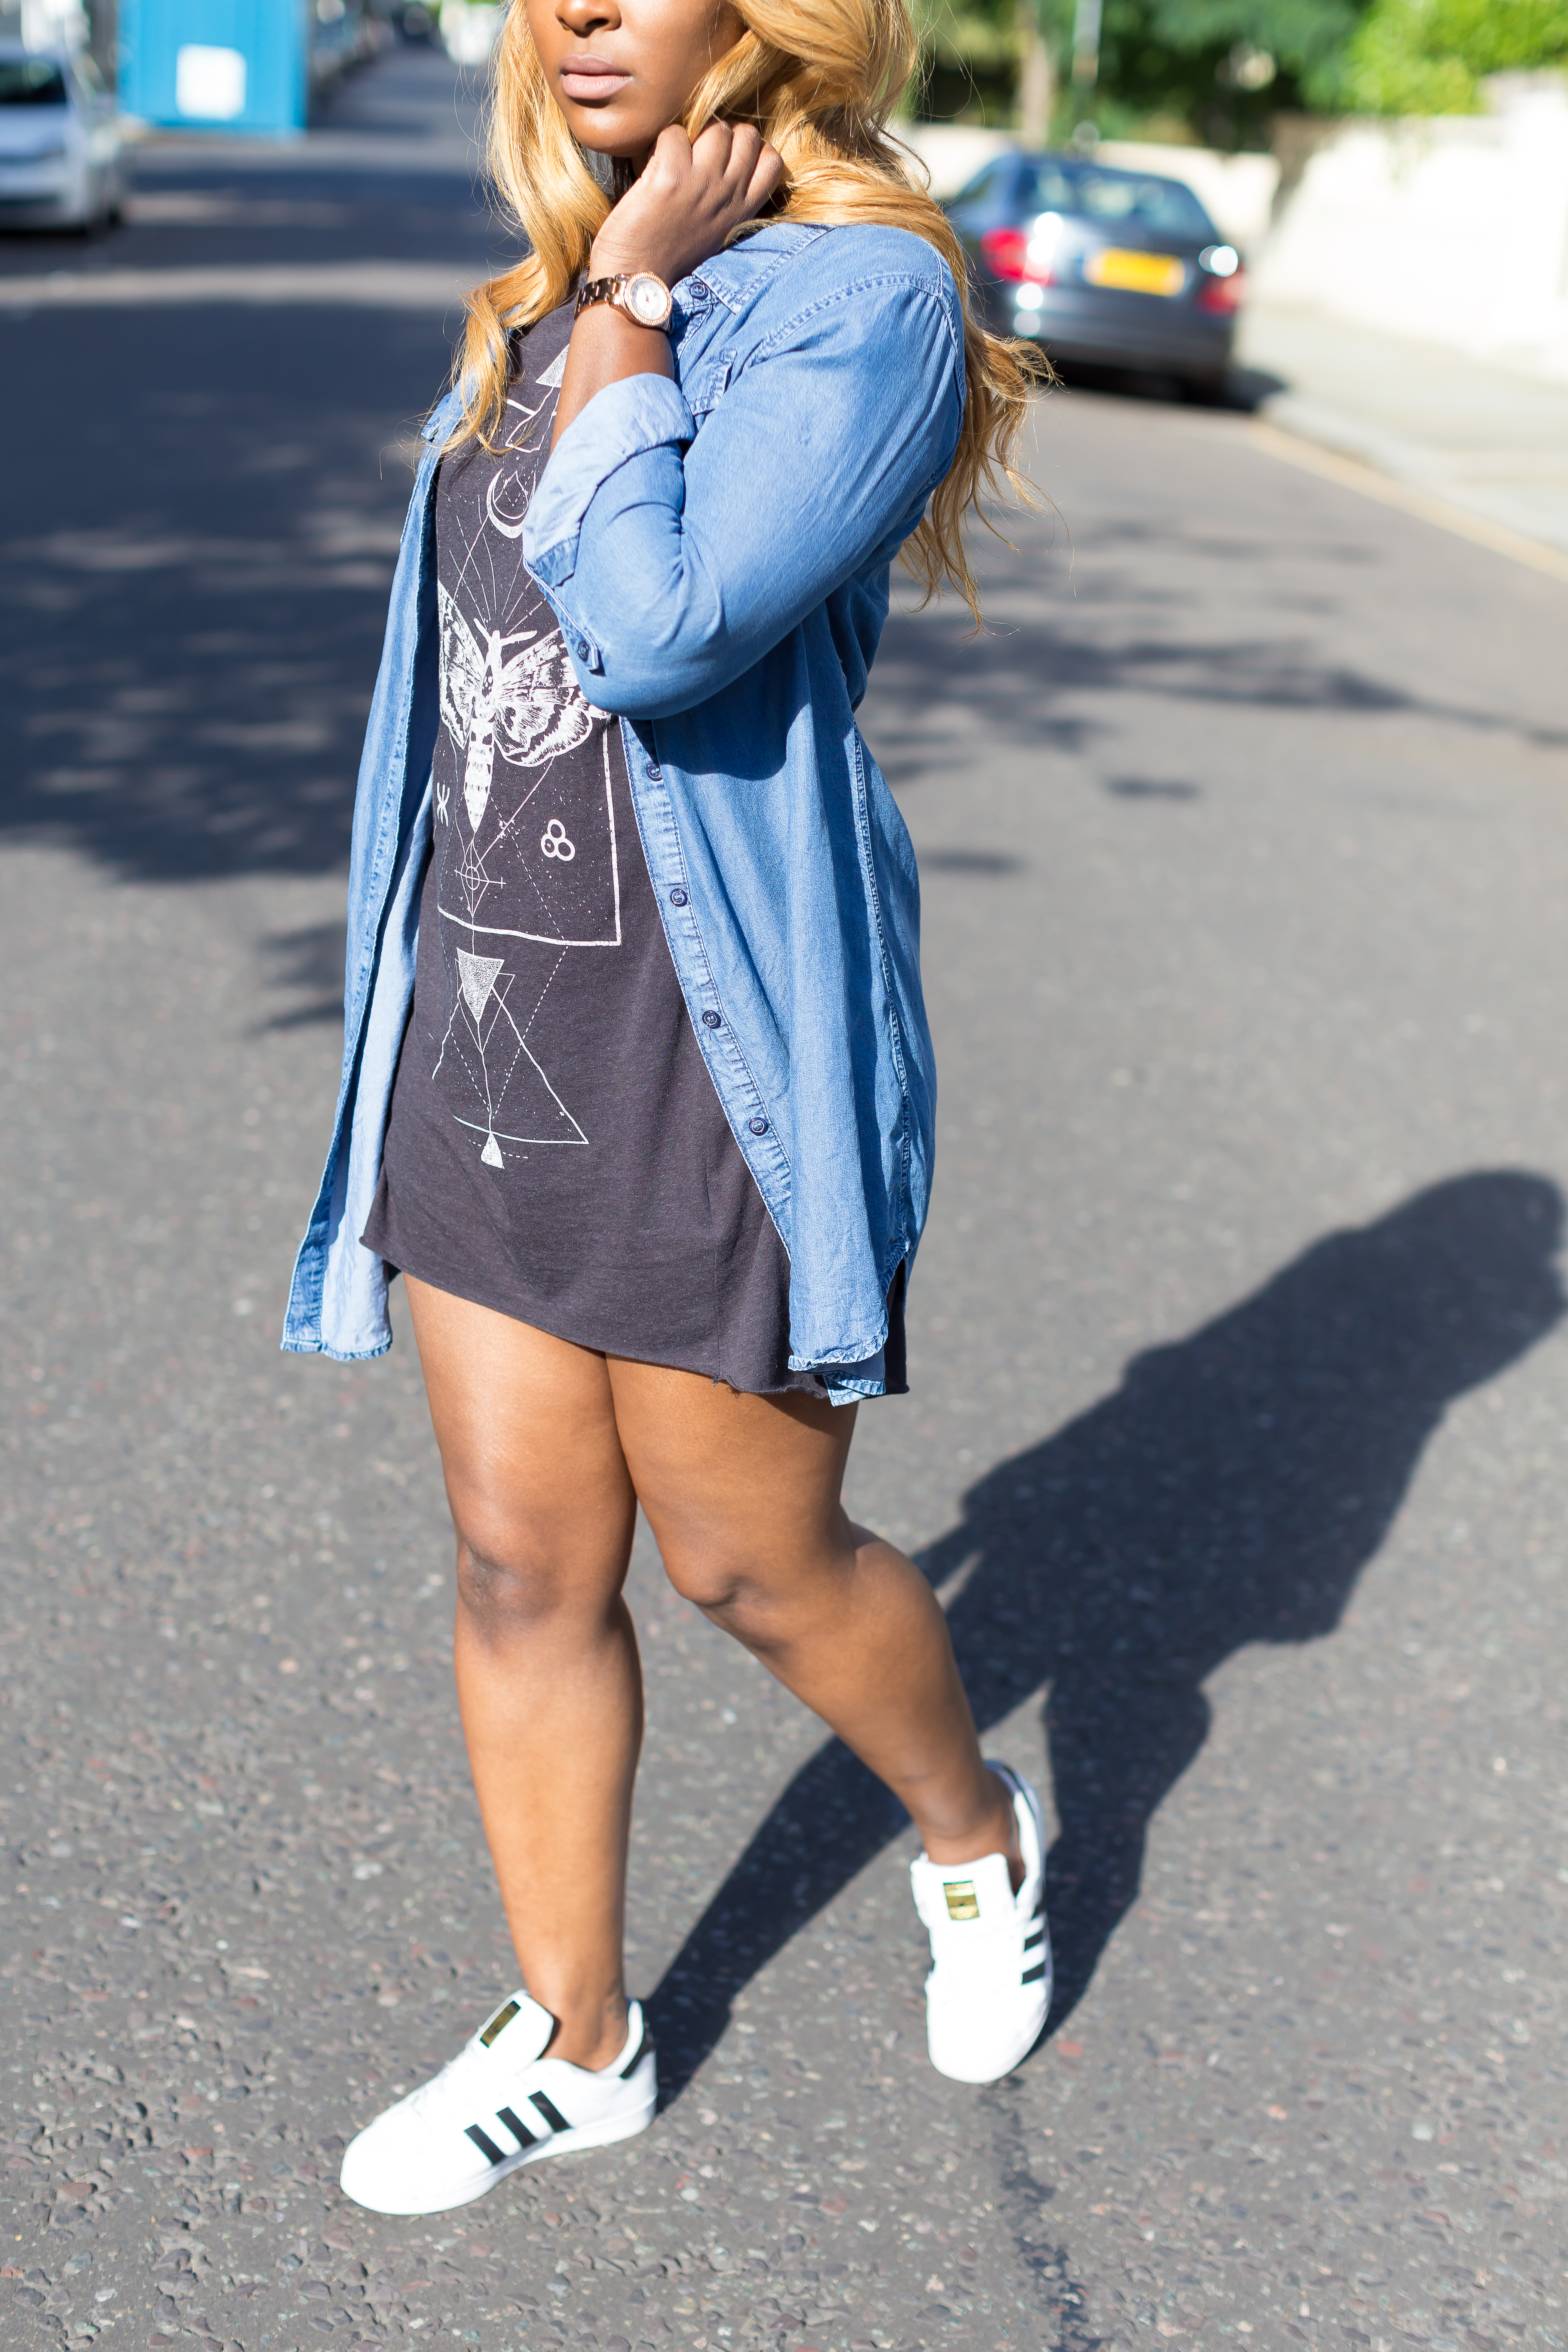 raychel-says-blue-denim-dress-brown-print-top-micheal-kors-rose-gold-watch-adidas-superstar